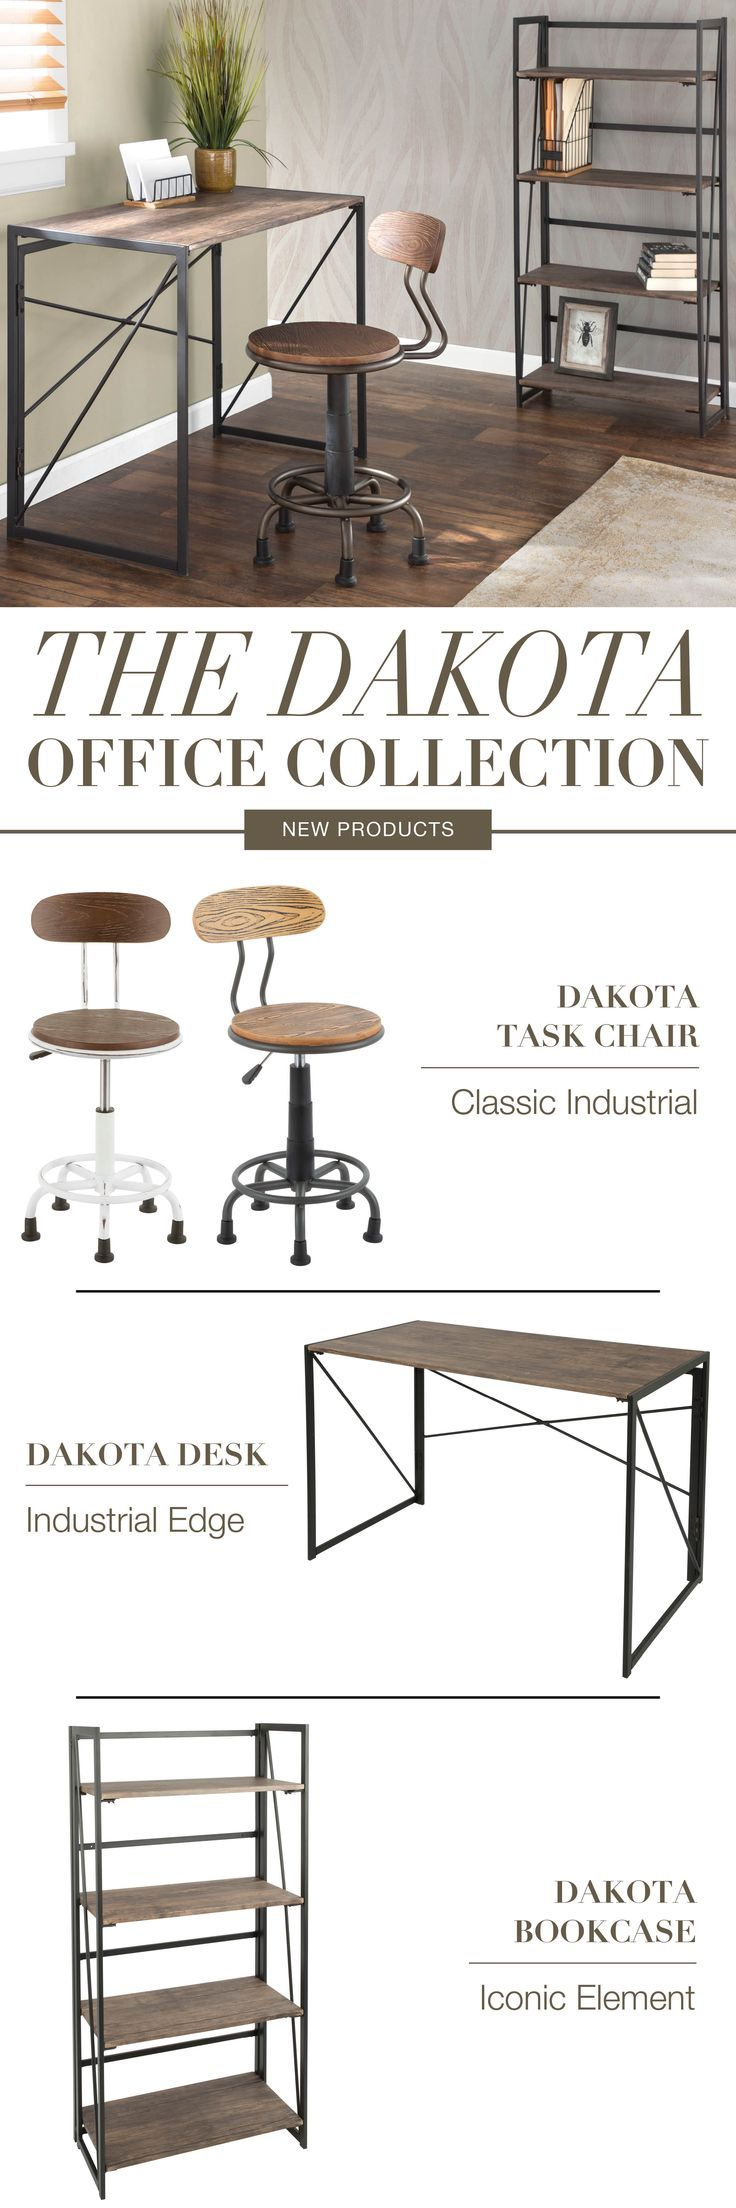 New from LumiSource... The Dakota Office Collection! Add an industrial twist to your office space with the Dakota Office Collection By LumiSource! A unique crisscross metal frame supports a rustic wood top and adds to that industrial look. Easy to assemble, this desk is perfect for any home office!